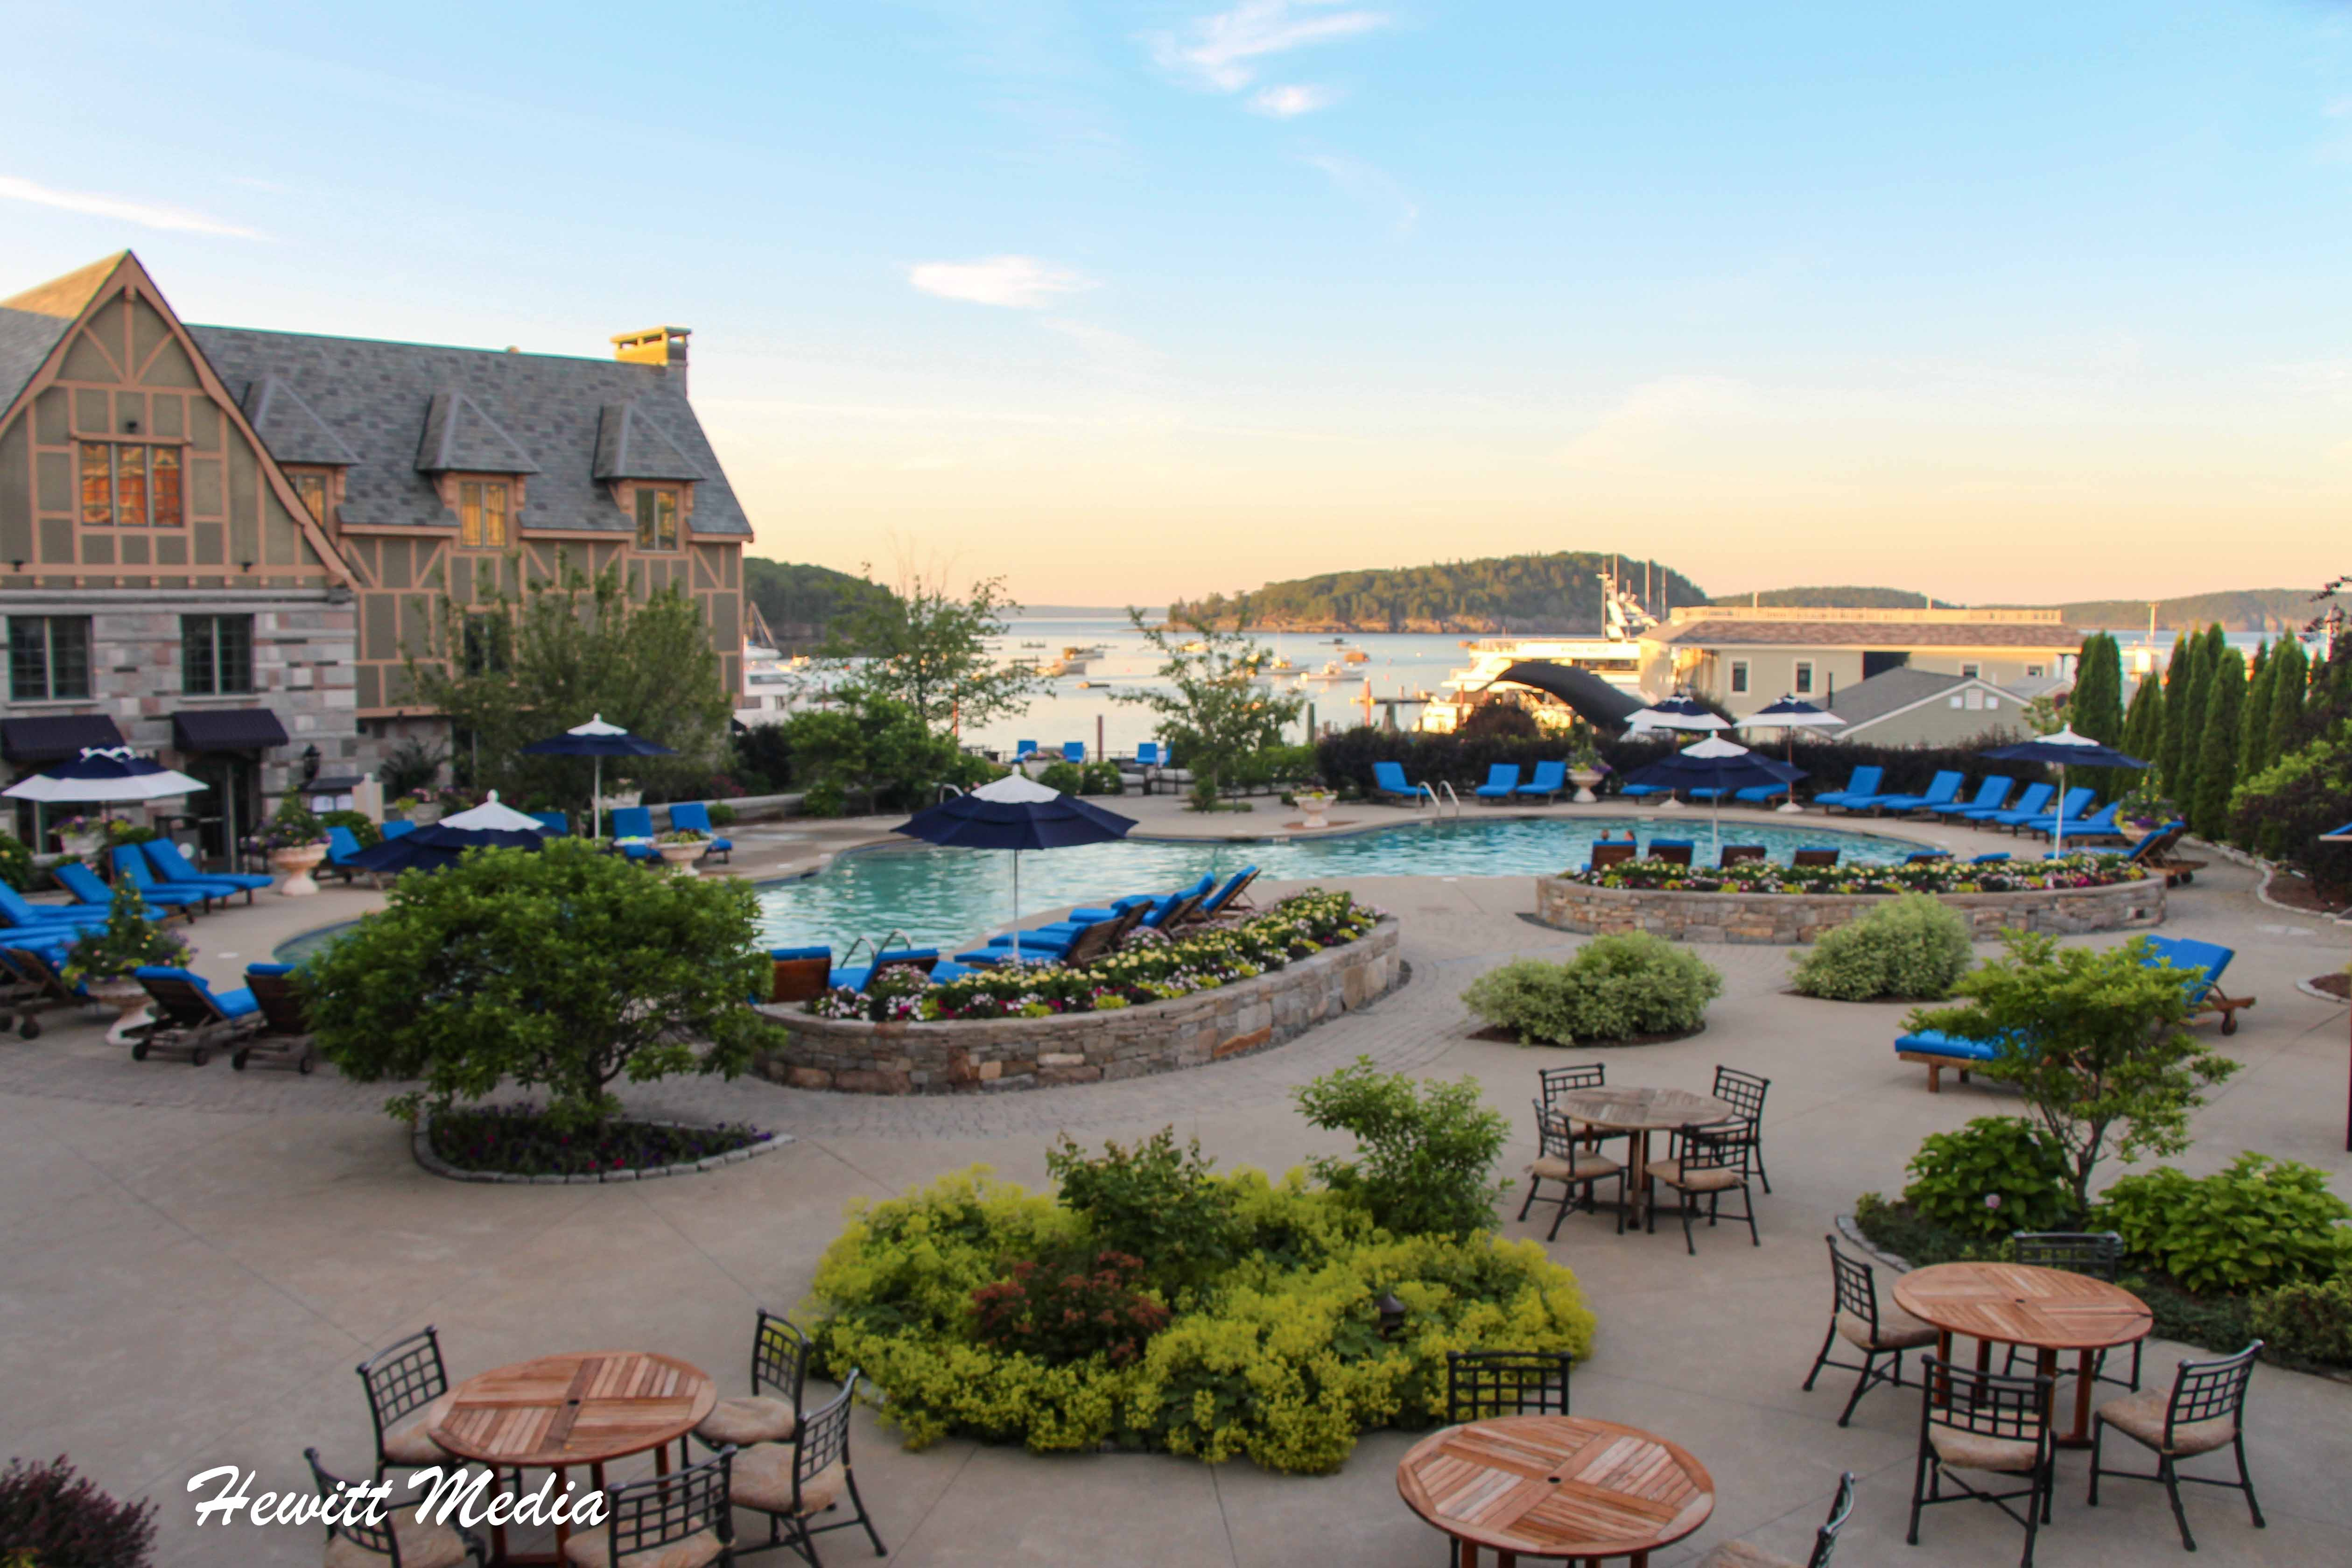 Bar Harbor Resort